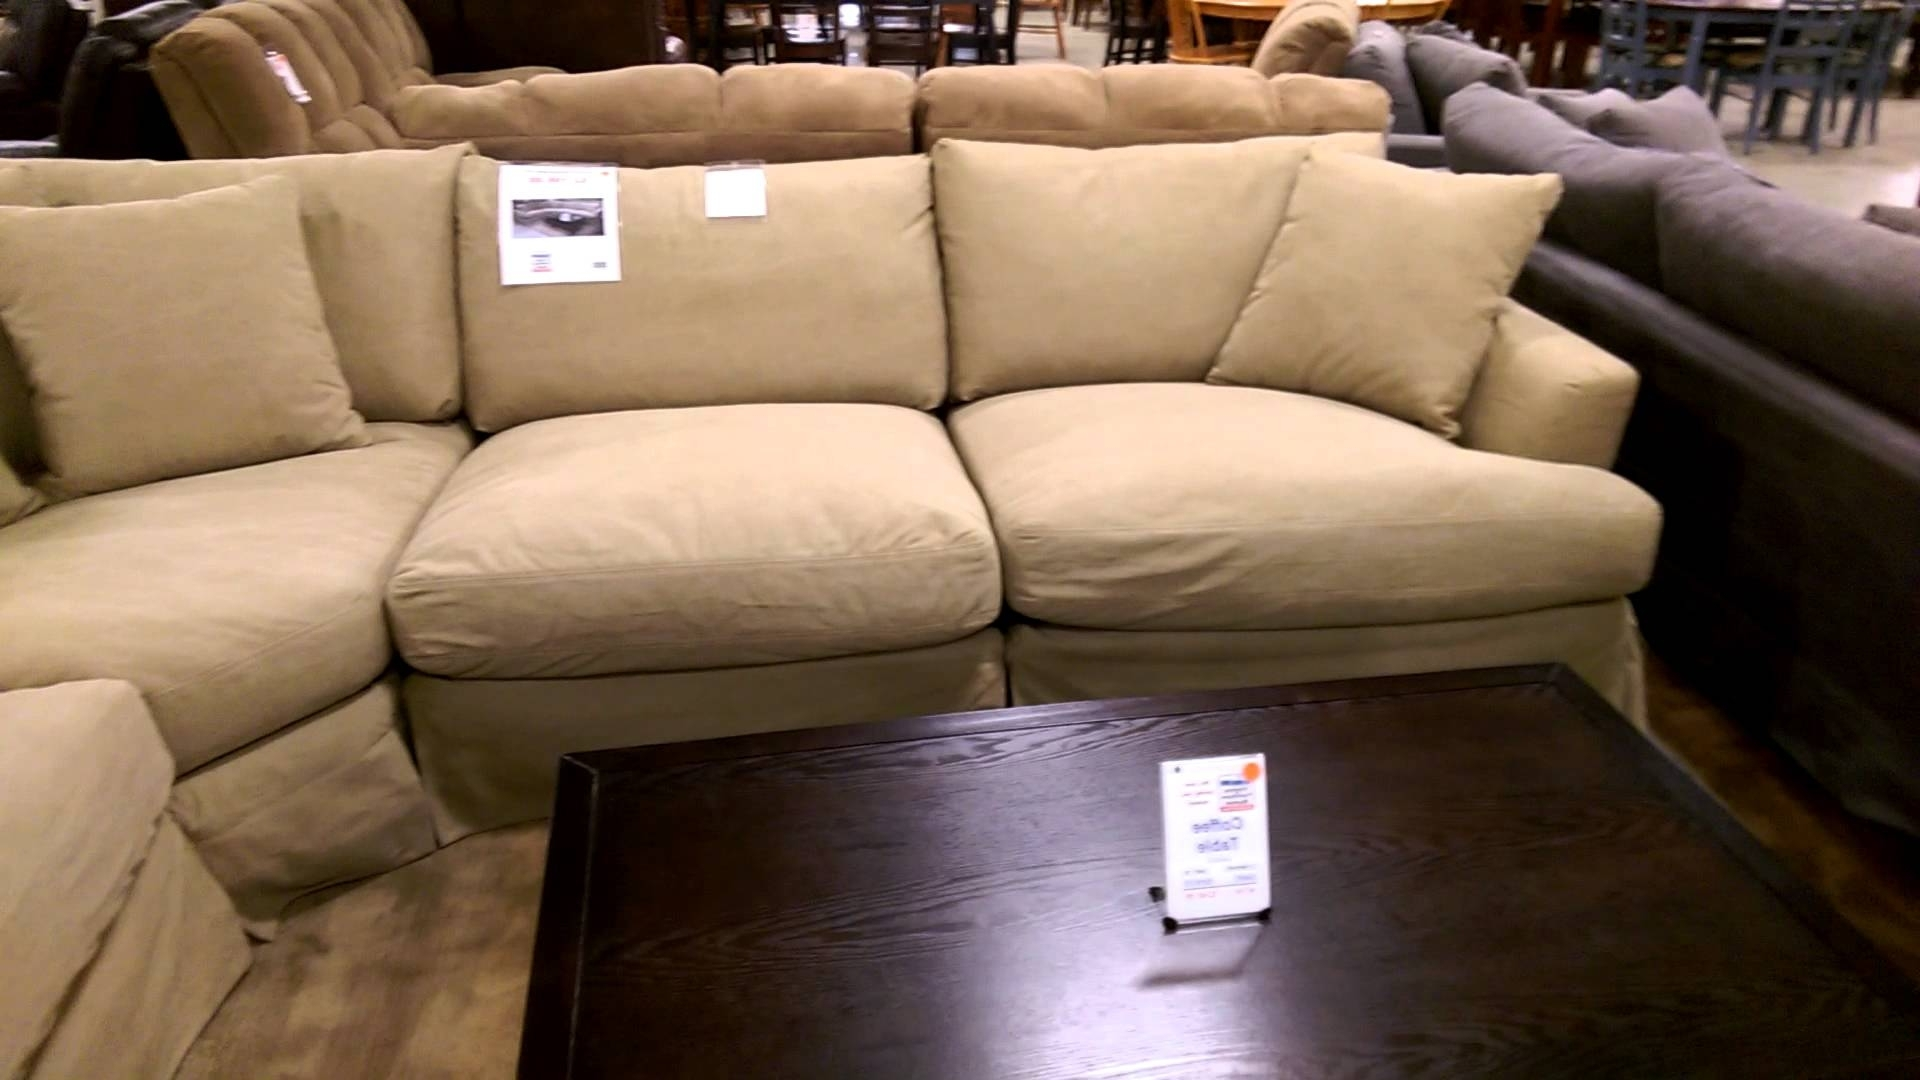 Latest Sectional Sofa Design: Deep Sectional Sofas Recliners Chaise Sale Pertaining To Deep Sectional Sofas With Chaise (View 7 of 15)